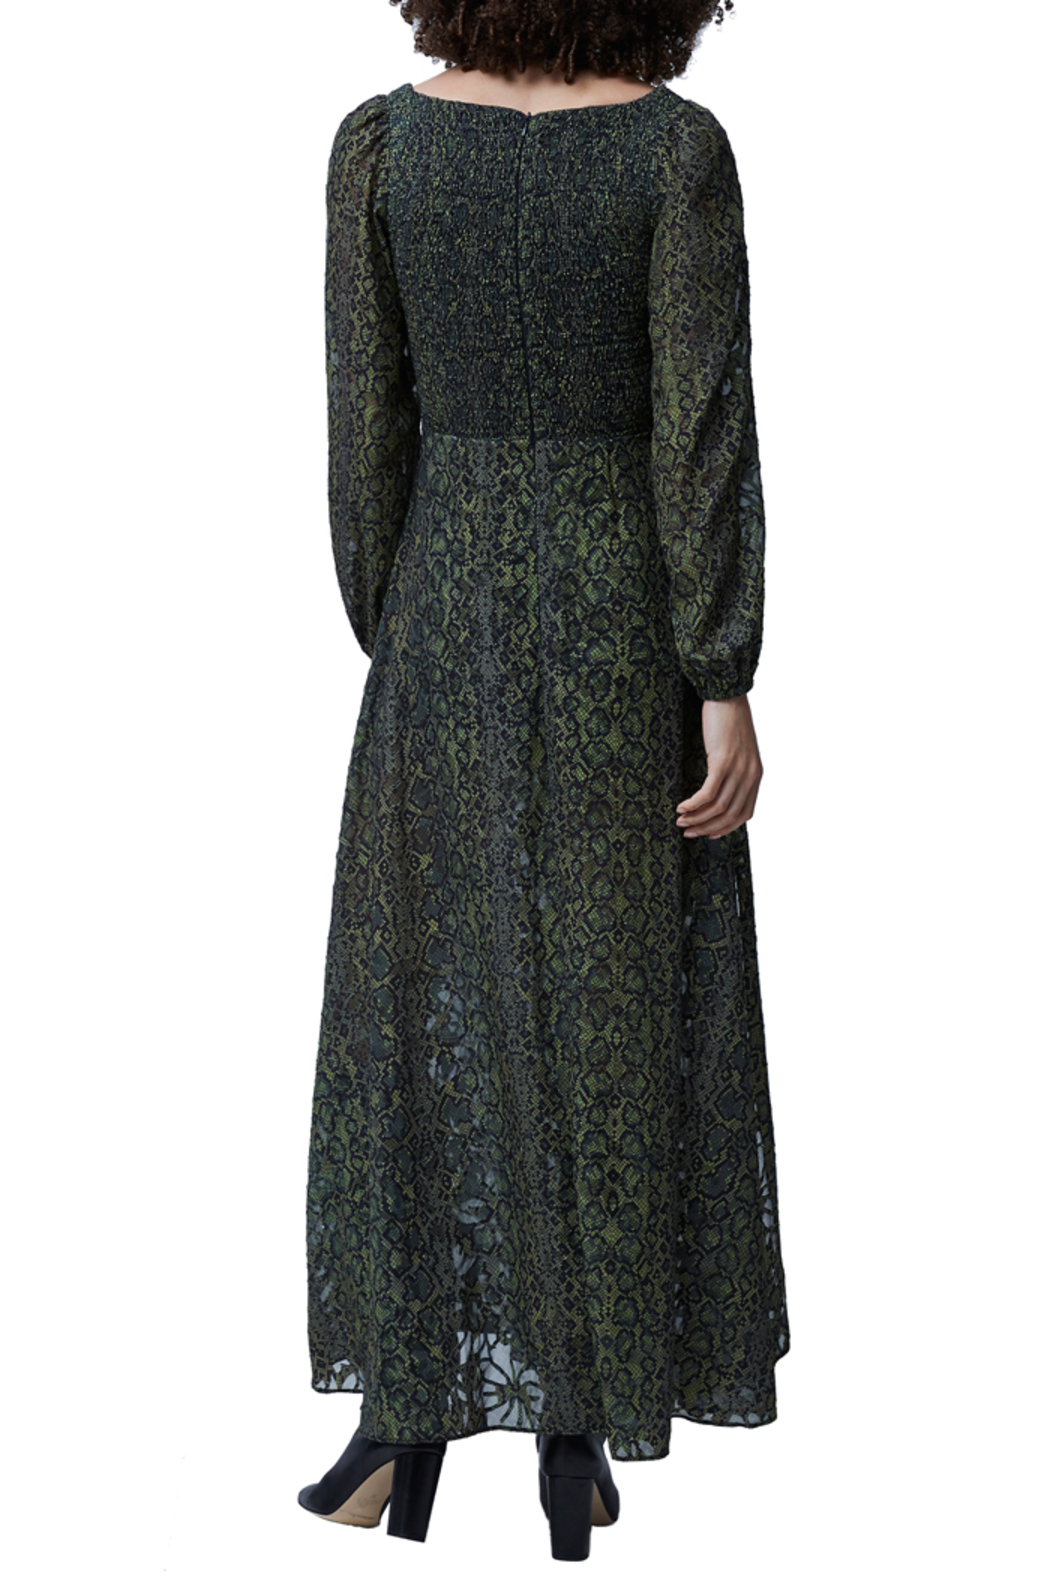 French Connection Green Multi Smocked Maxi Dress - Back Cropped Image